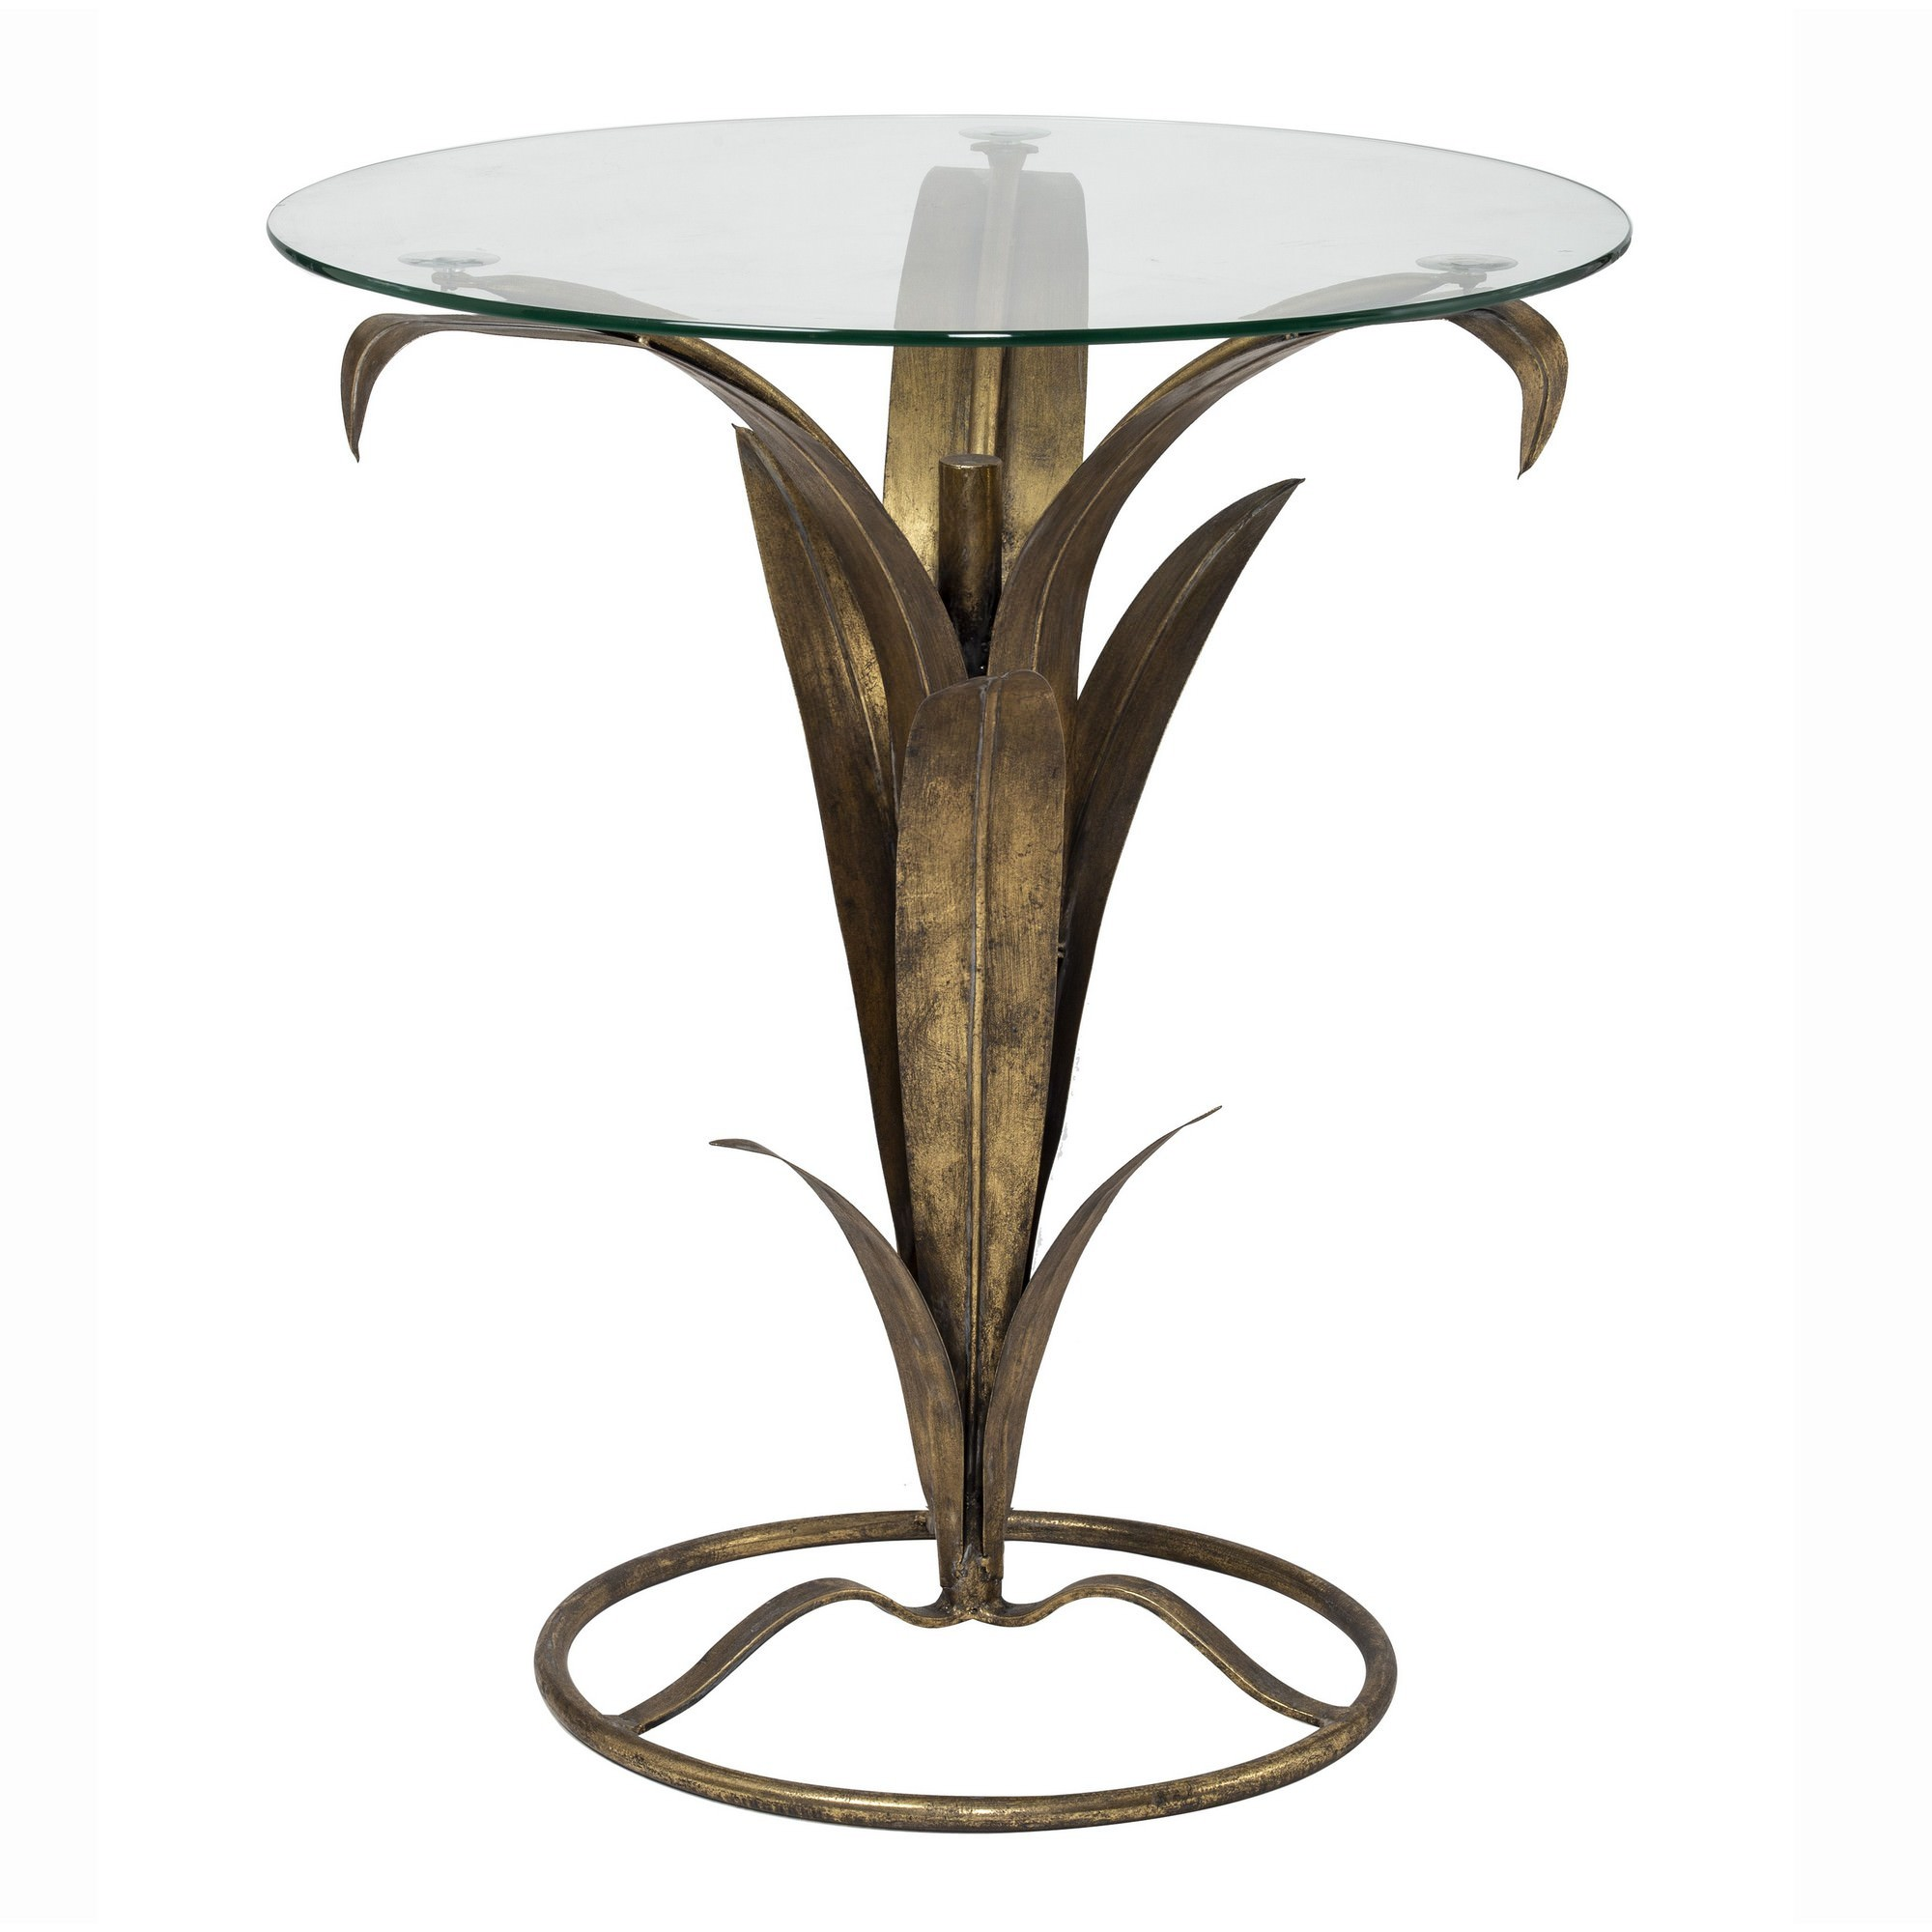 Leslie Handmade Glass Topped Metal Round Side Table